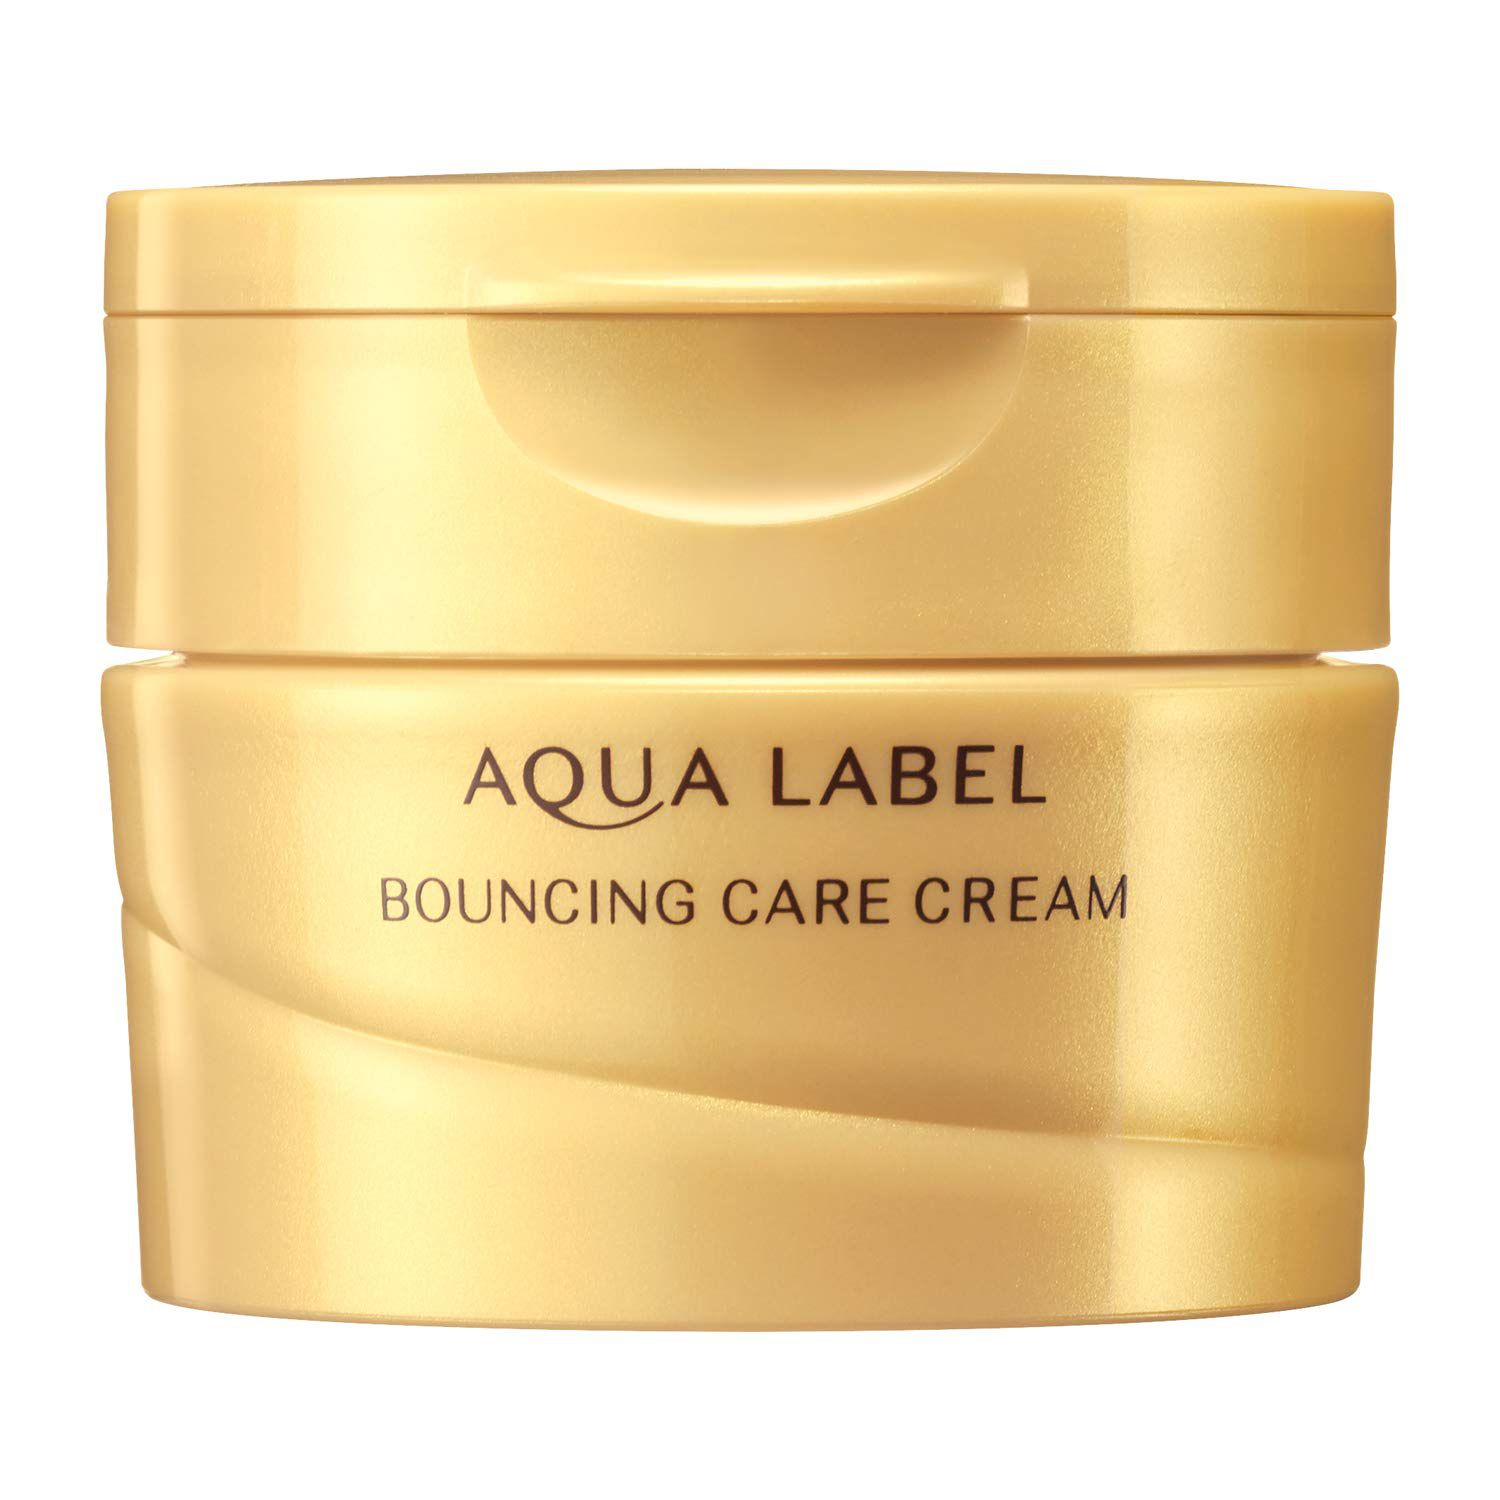 Shiseido Aqua Label Bouncing Care Cream 50g